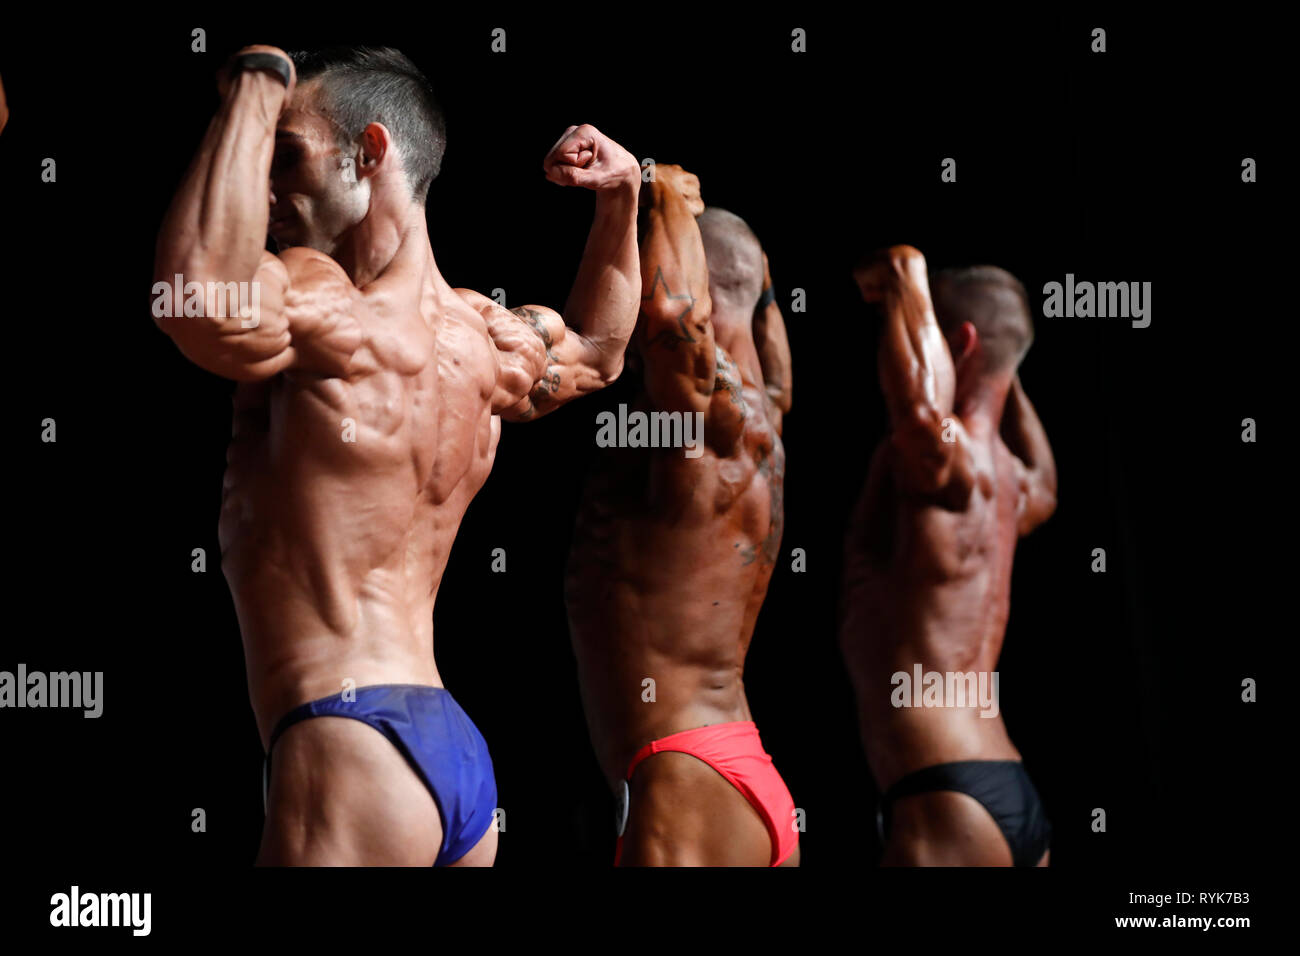 Candidats à la condition physique et culturisme championnat. La France. Photo Stock